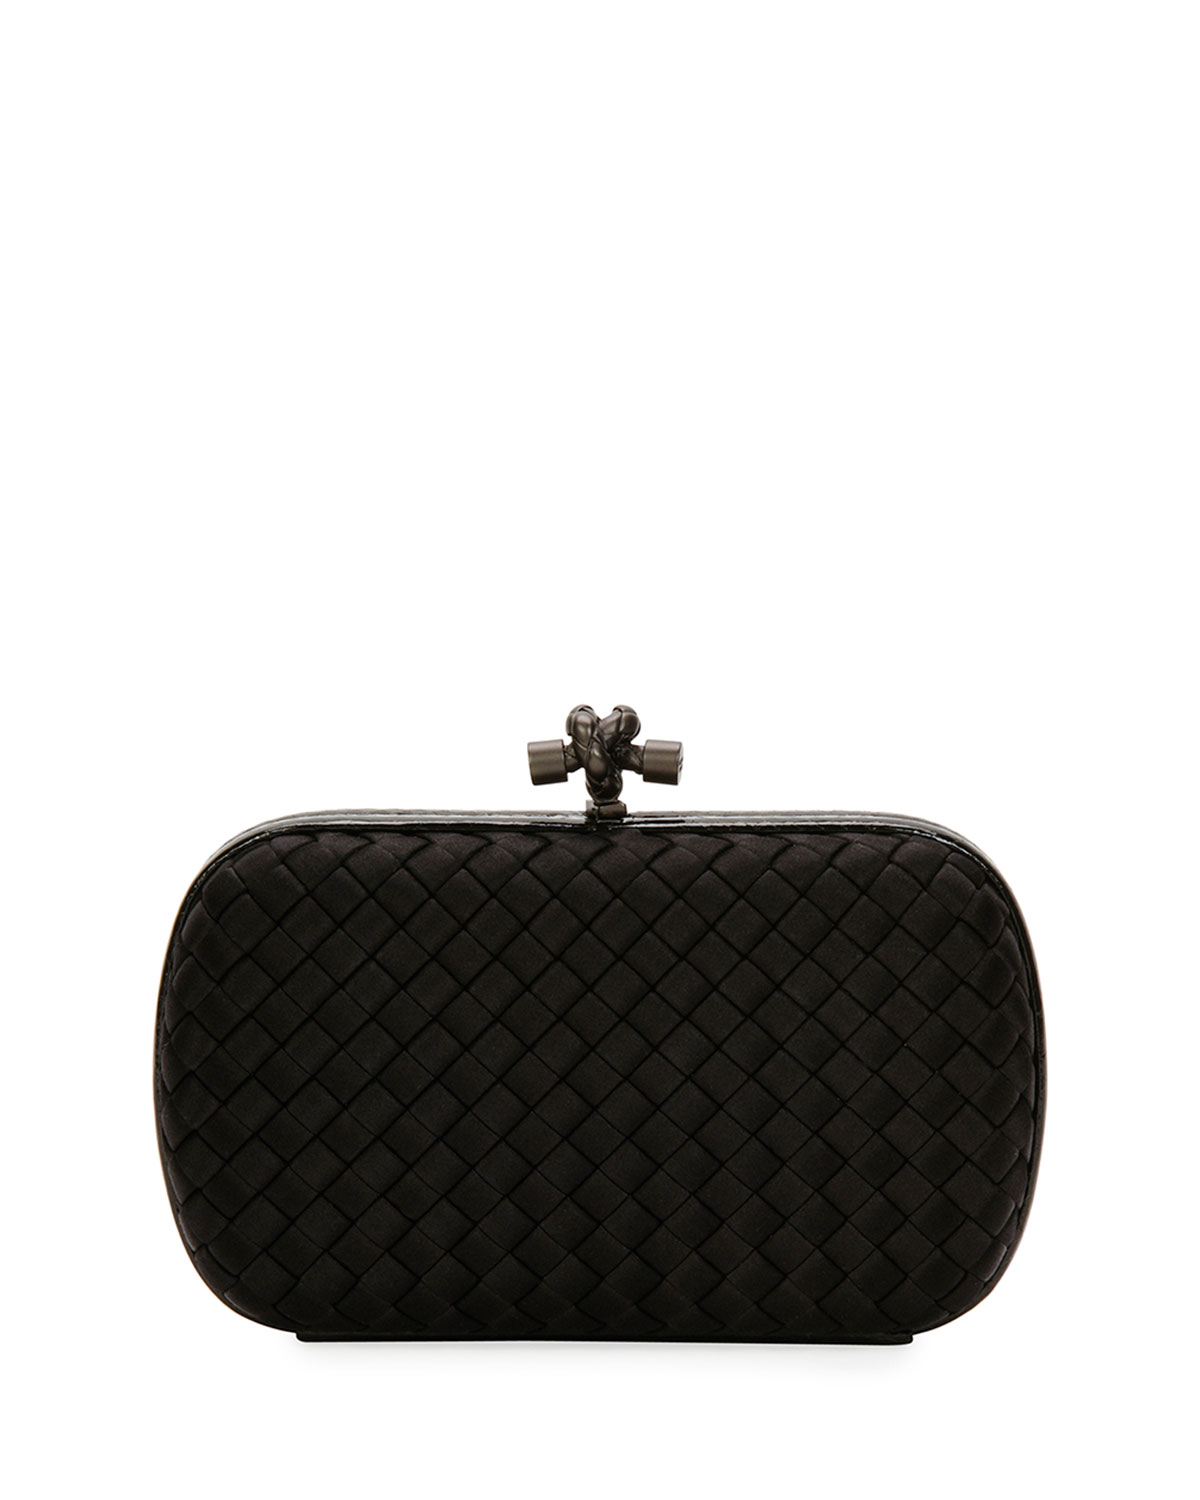 75989f13a052 Bottega Veneta Medium Chain Knot Clutch Bag